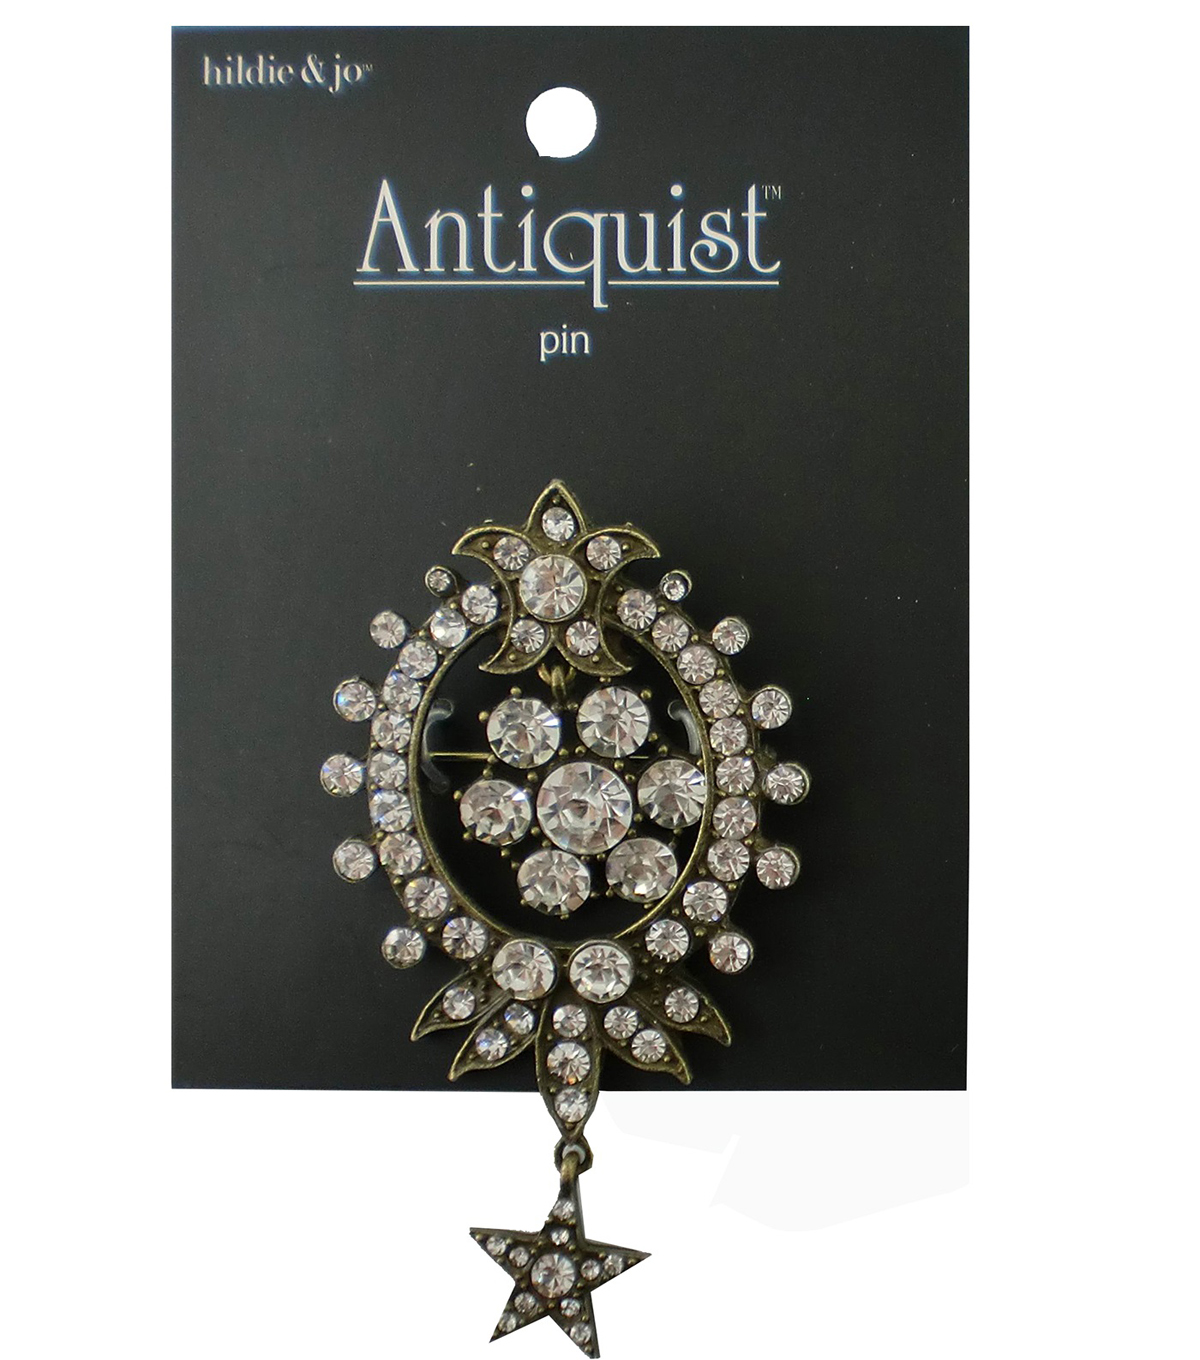 hildie & jo Antiquist Fleur di Lis Antique Gold Brooch-Crystals